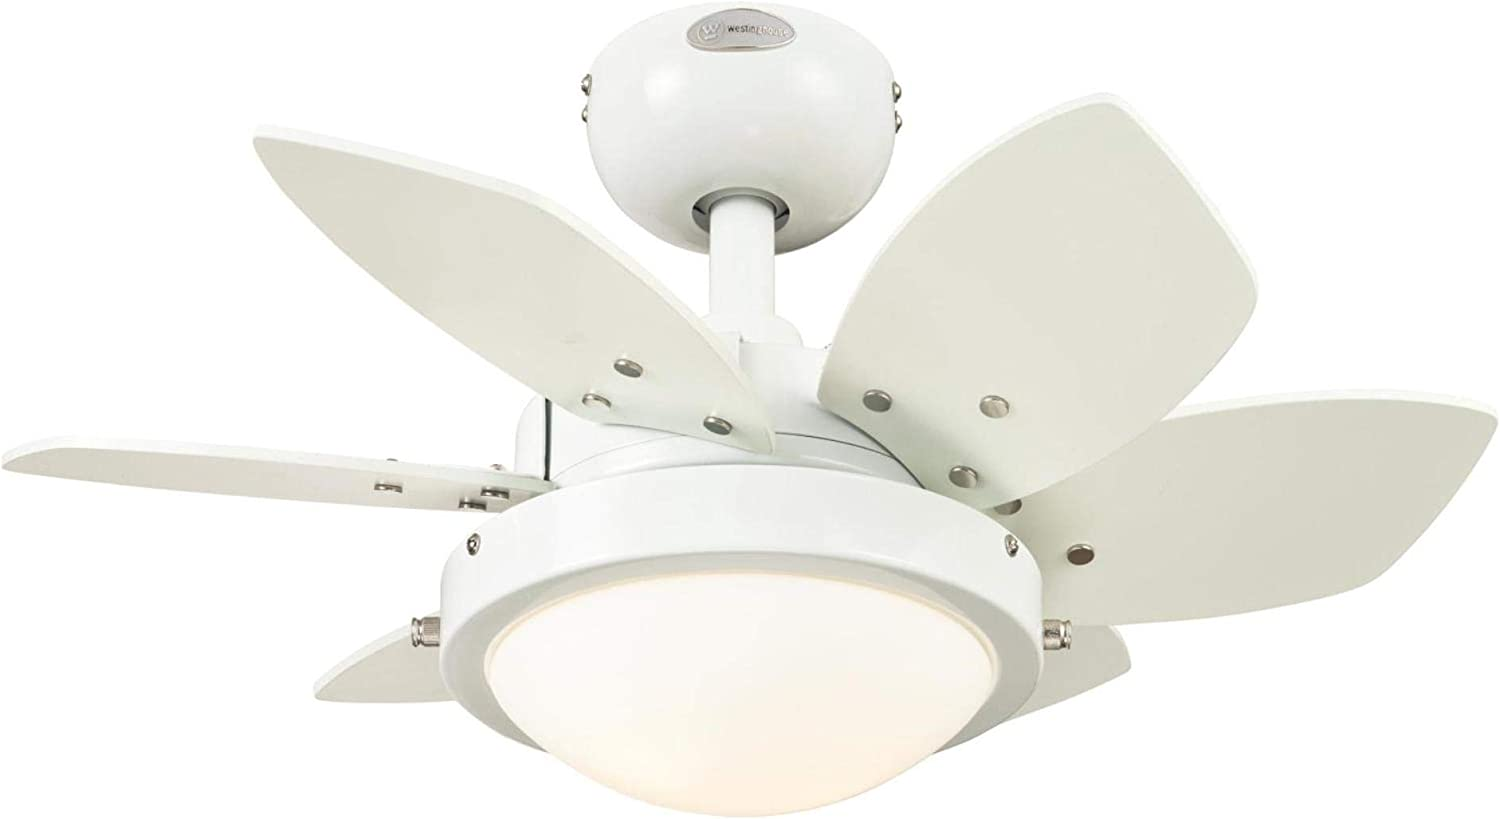 Westinghouse Popular Lighting 7224700 Quince security Indoor Ceiling Lig with Fan